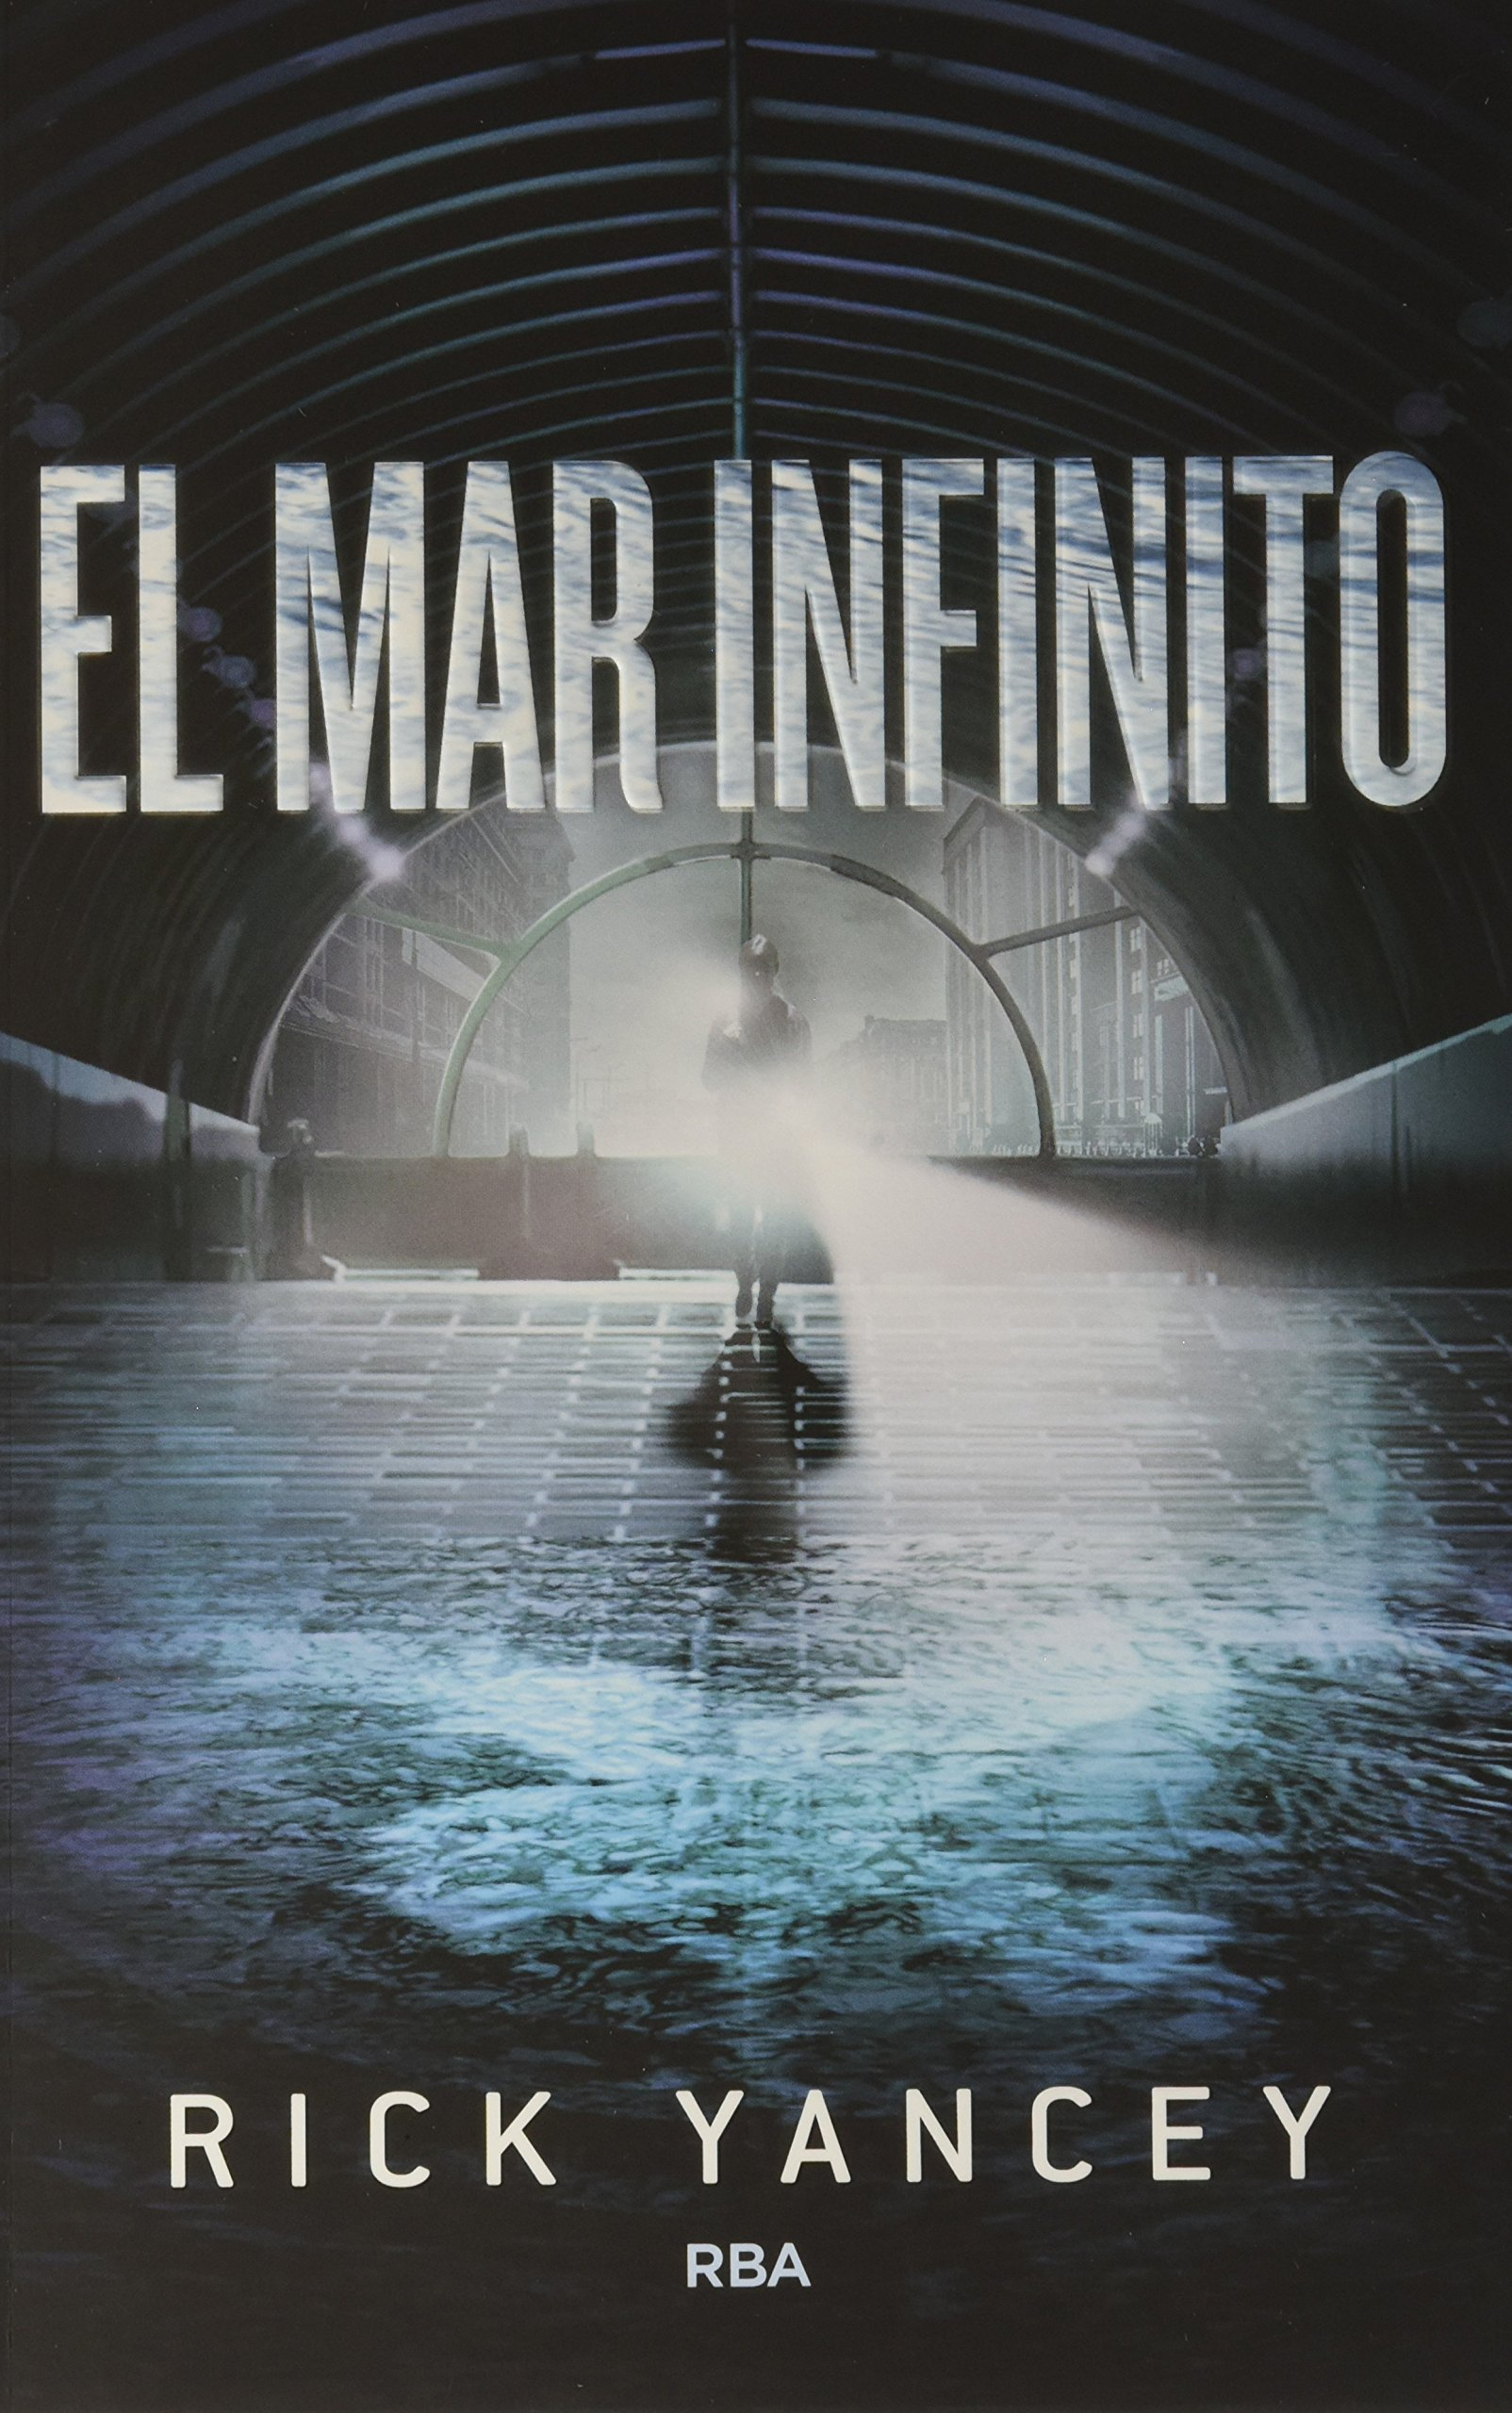 Amazon.com: Mar infinito (Spanish Edition) (9788427208278): Rick Yancey, Molino-RBA: Books